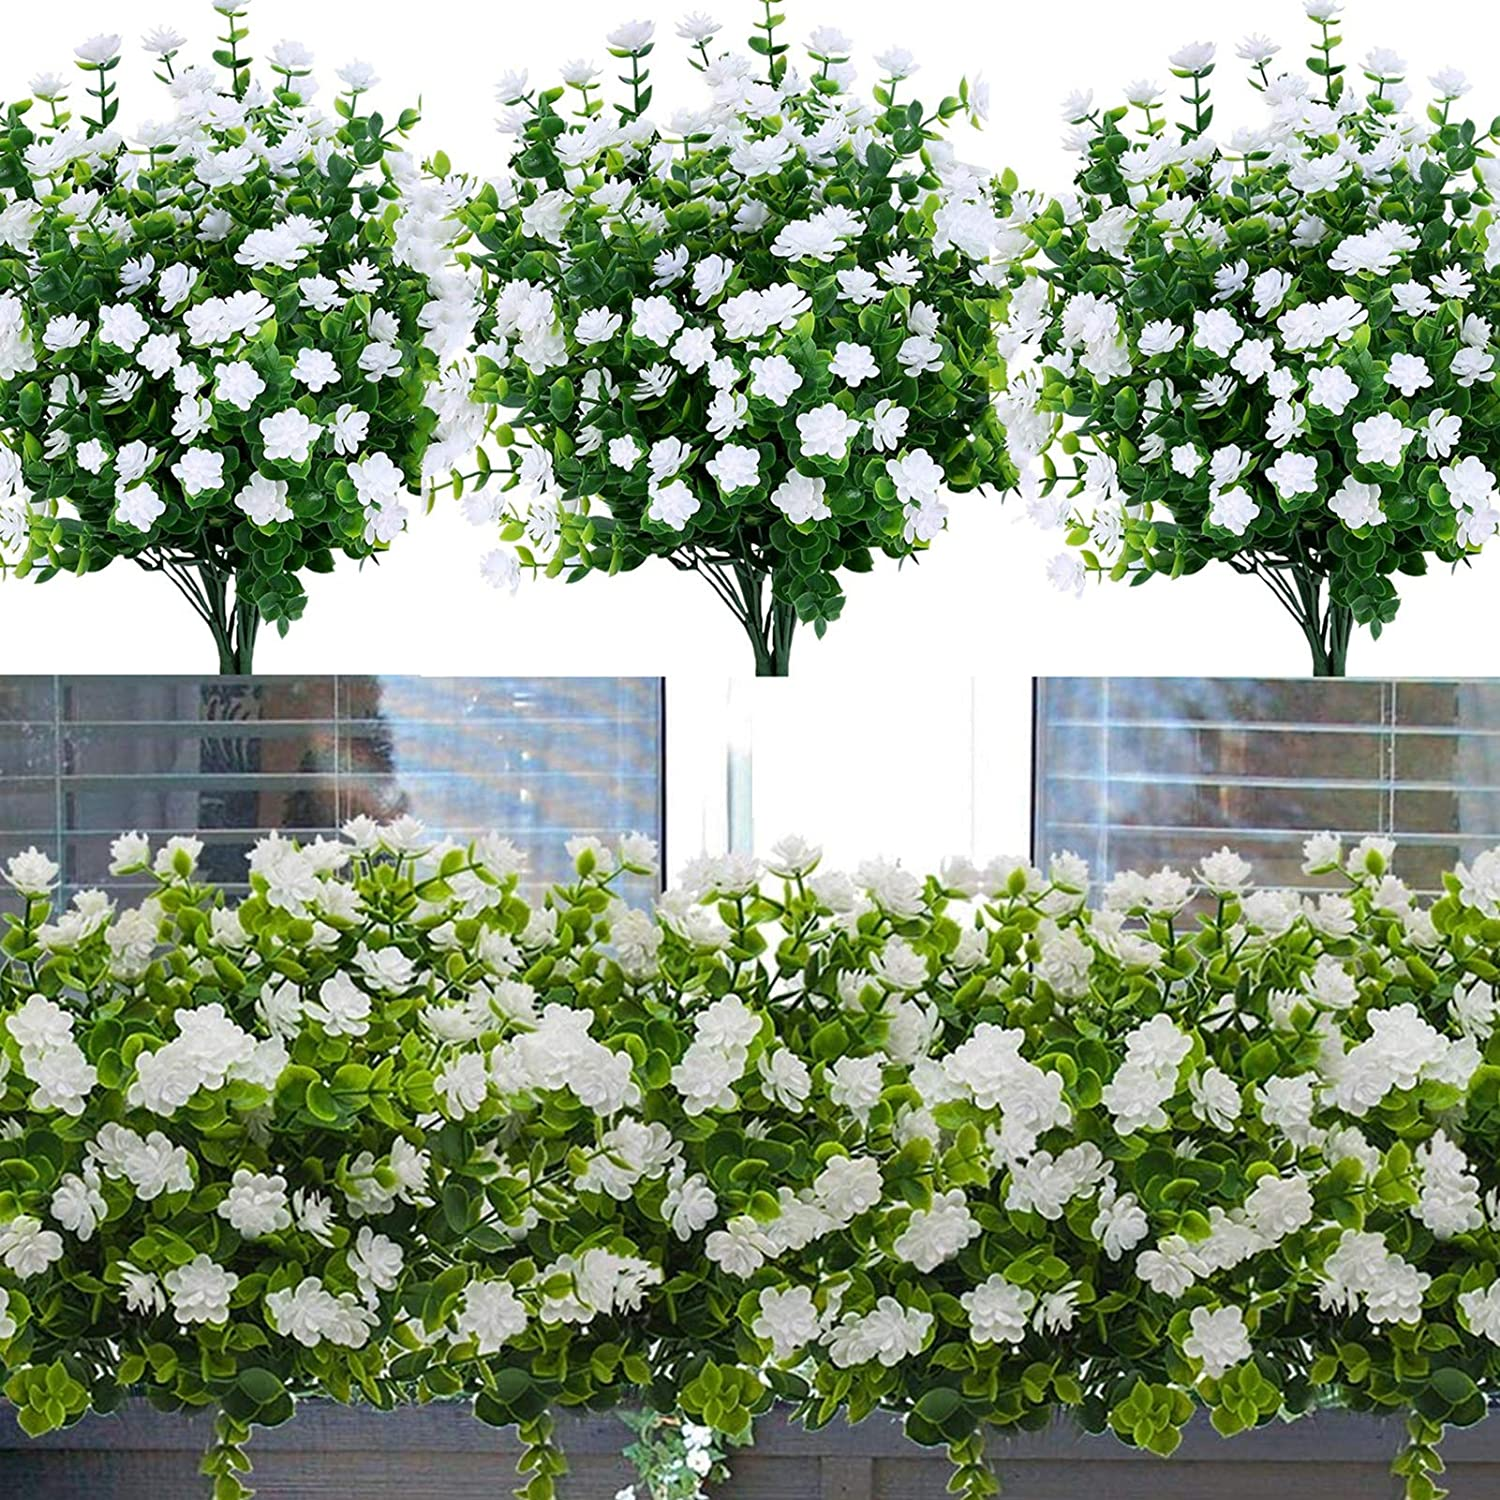 Artificial Fake Flowers Outdoor, 8pcs Plastic Flowers UV Resistant Faux Plants for Indoor Outside Hanging Home Porch Window Wedding Office Garden Decor (White)